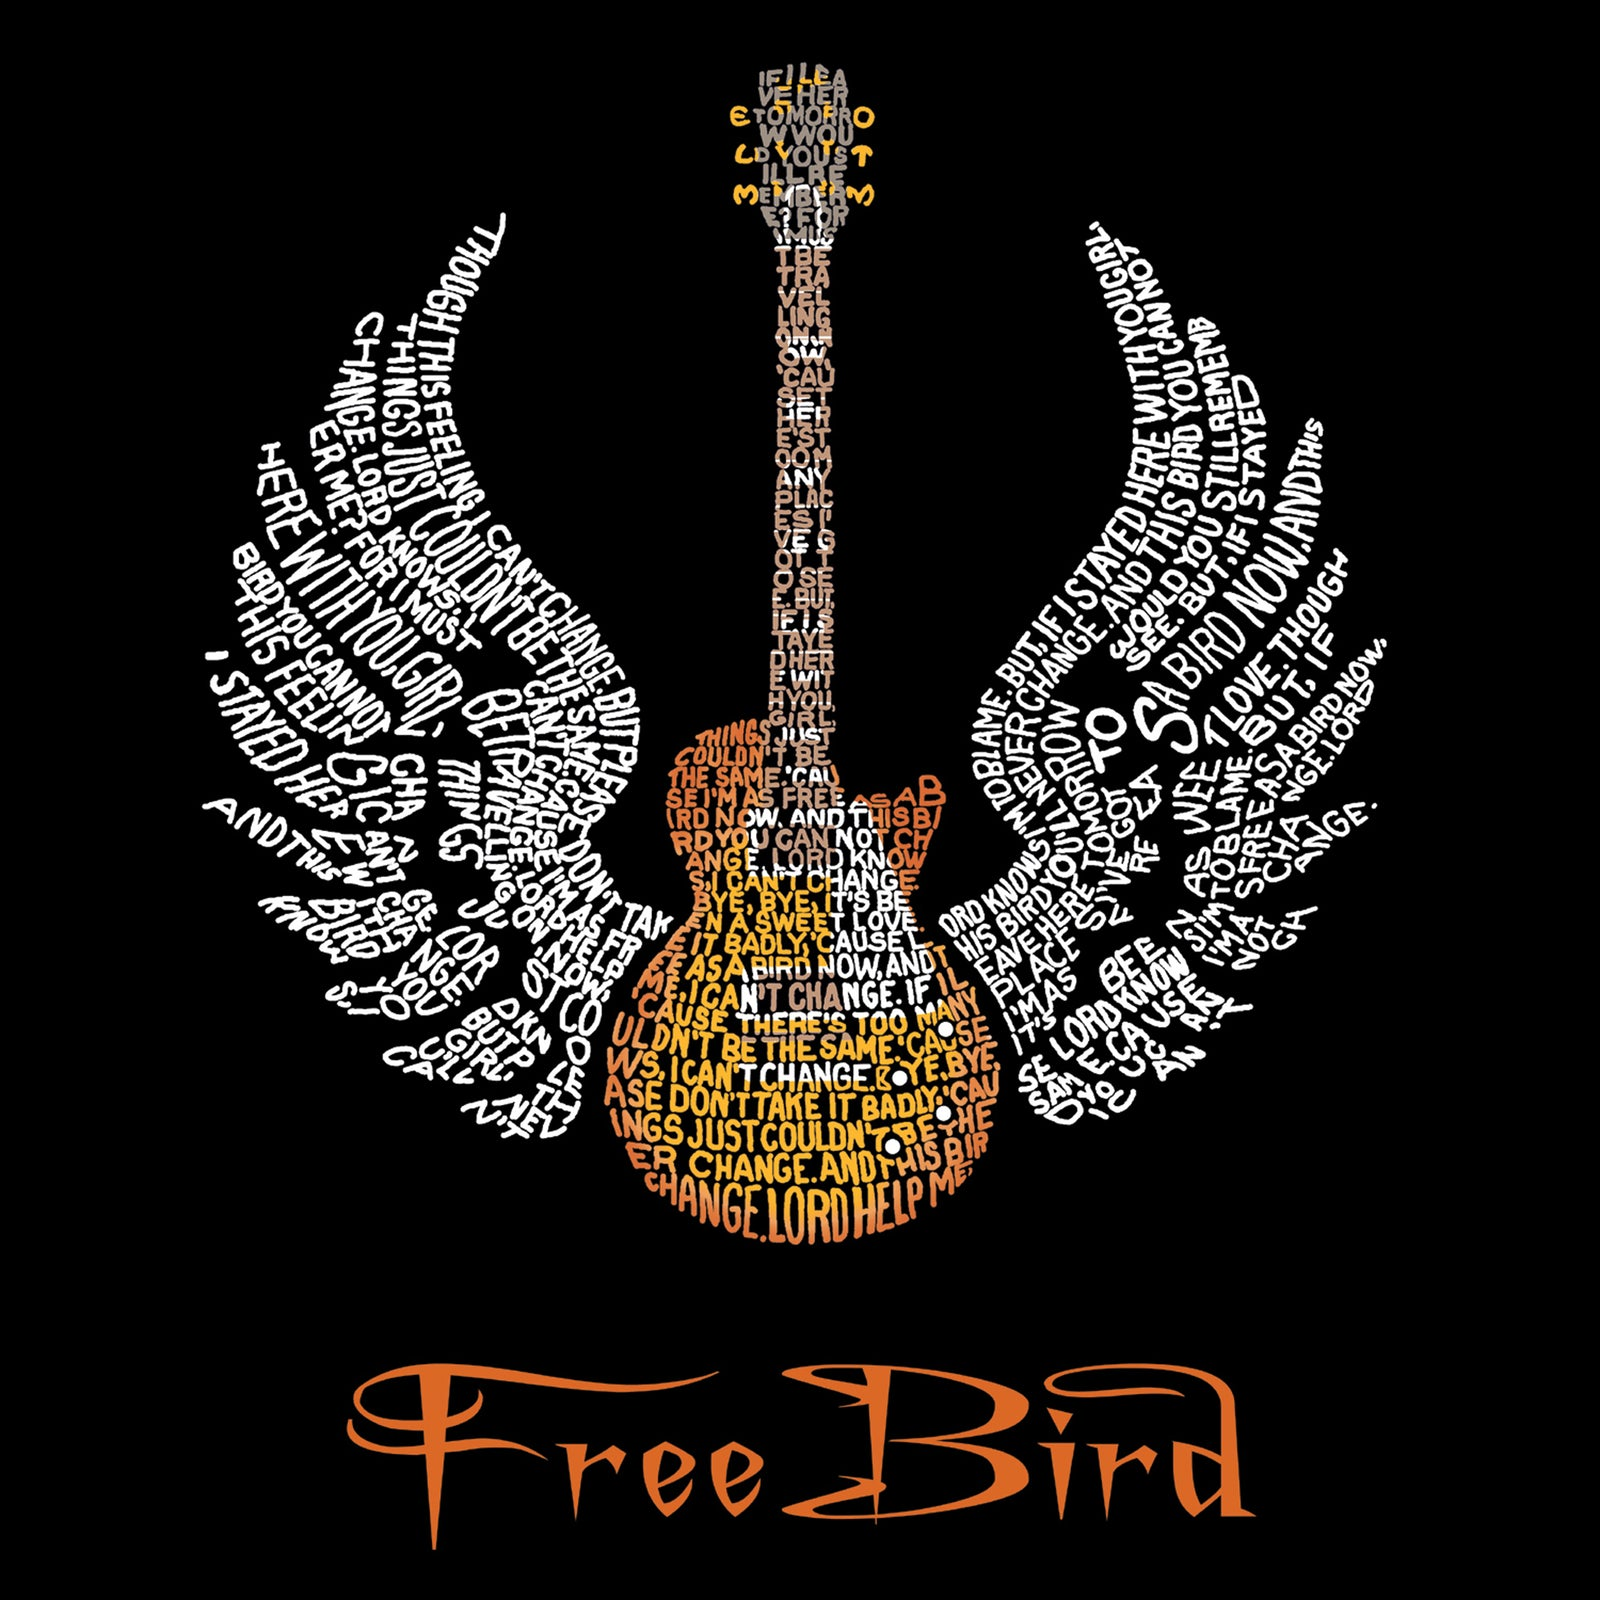 Women's Premium Blend Word Art T-shirt - LYRICS TO FREE BIRD